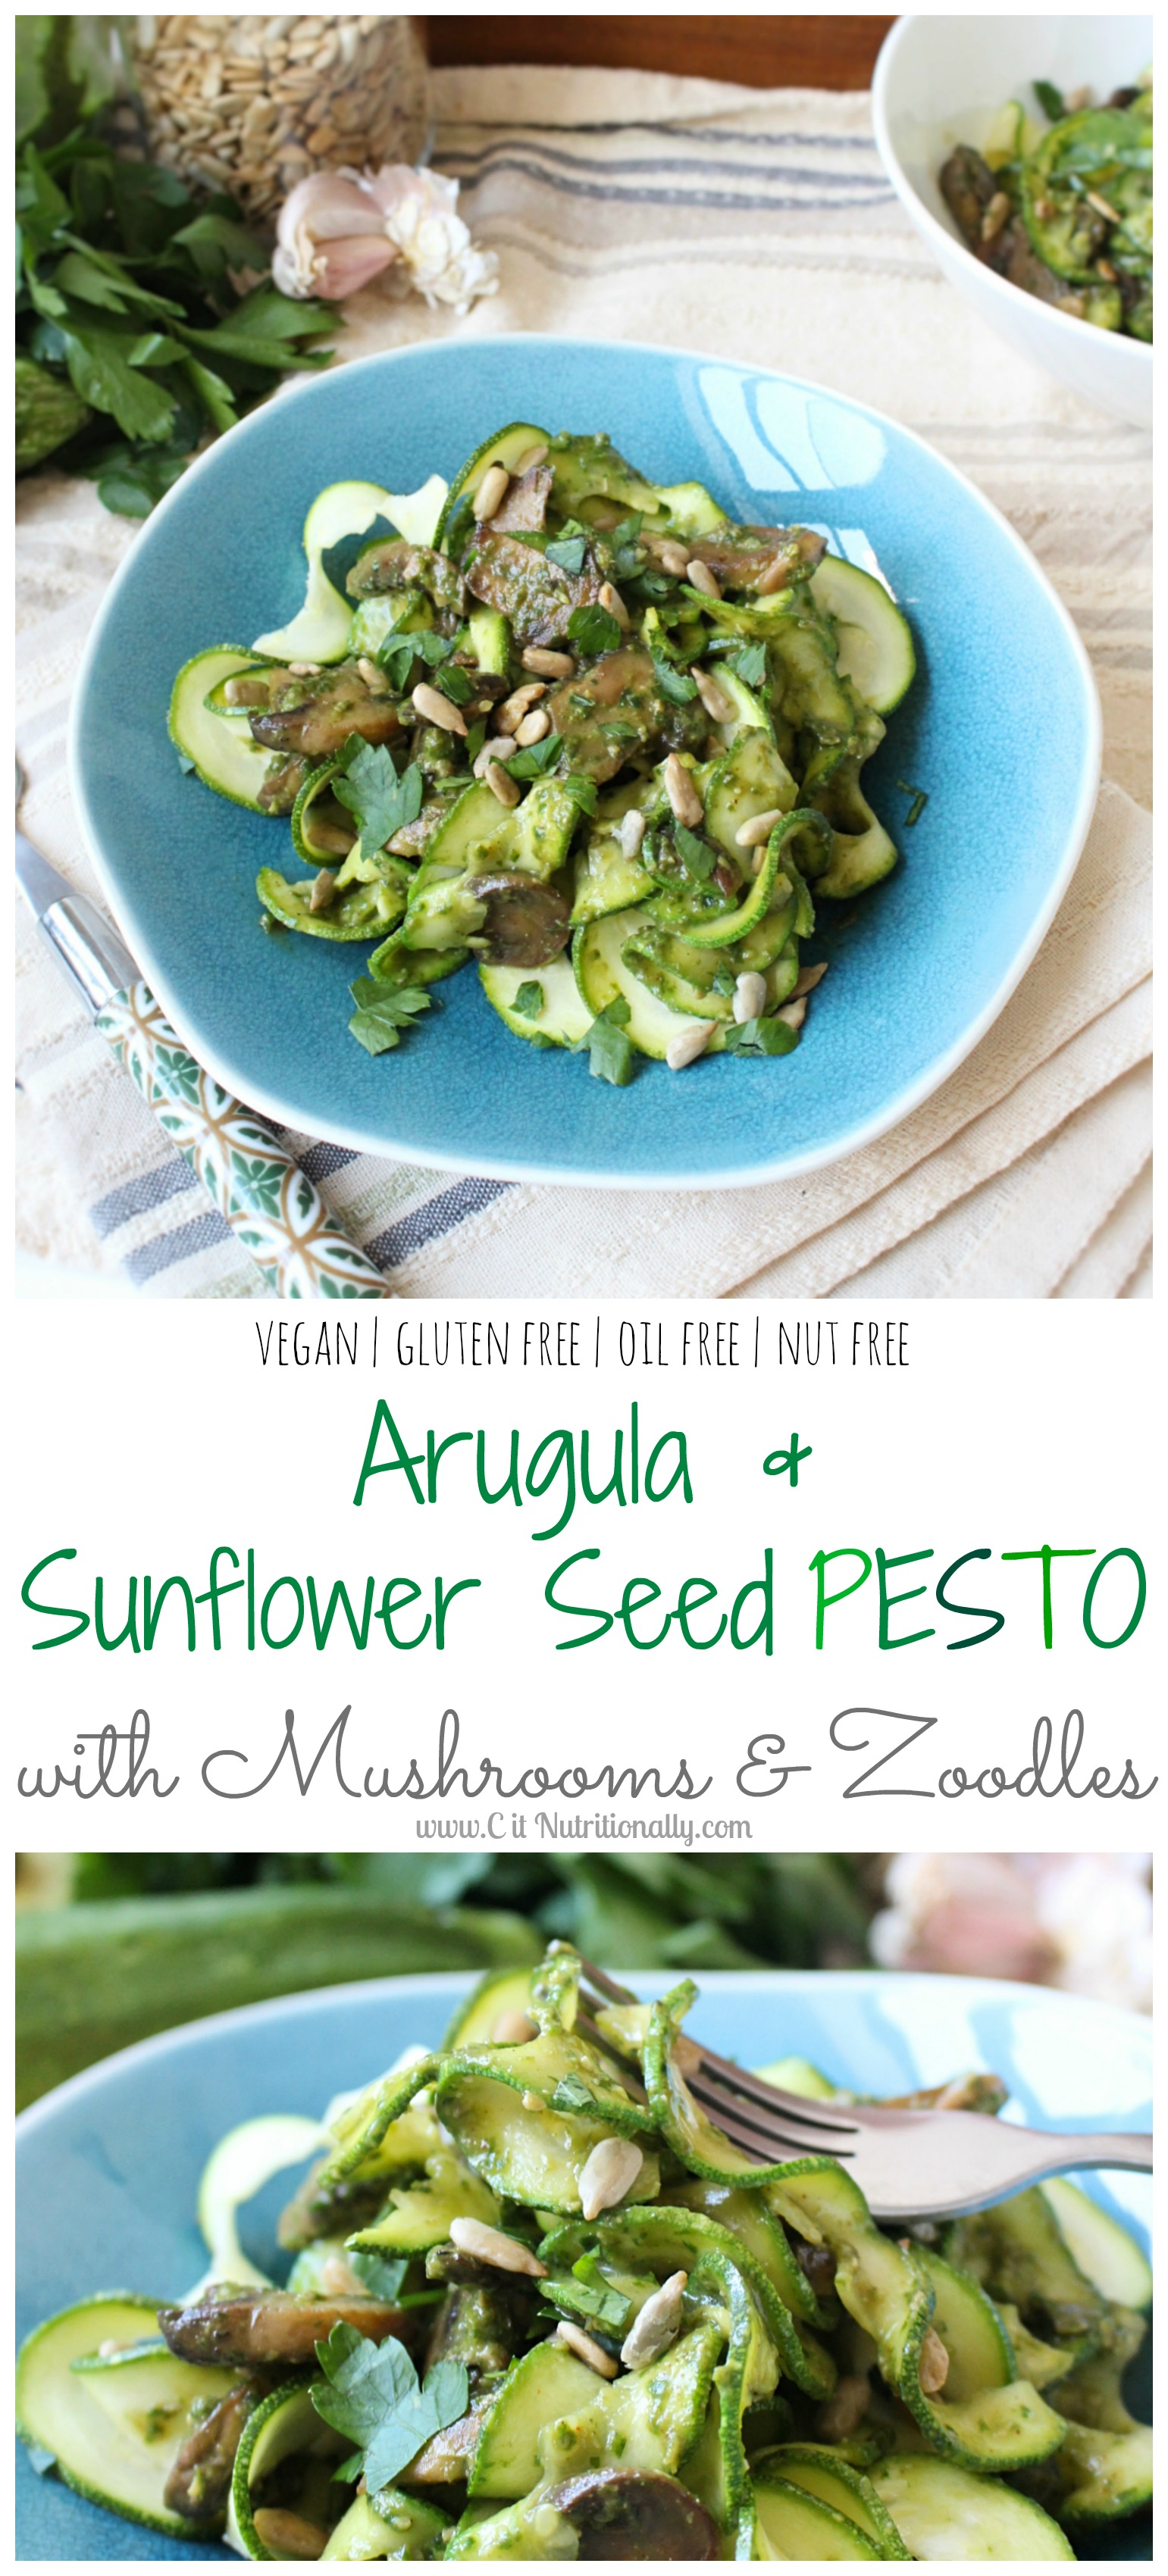 Arugula and Sunflower Seed Pesto with Mushrooms and Zoodles | C it Nutritionally #vegan #glutenfree #grainfree #oilfree #nutfree